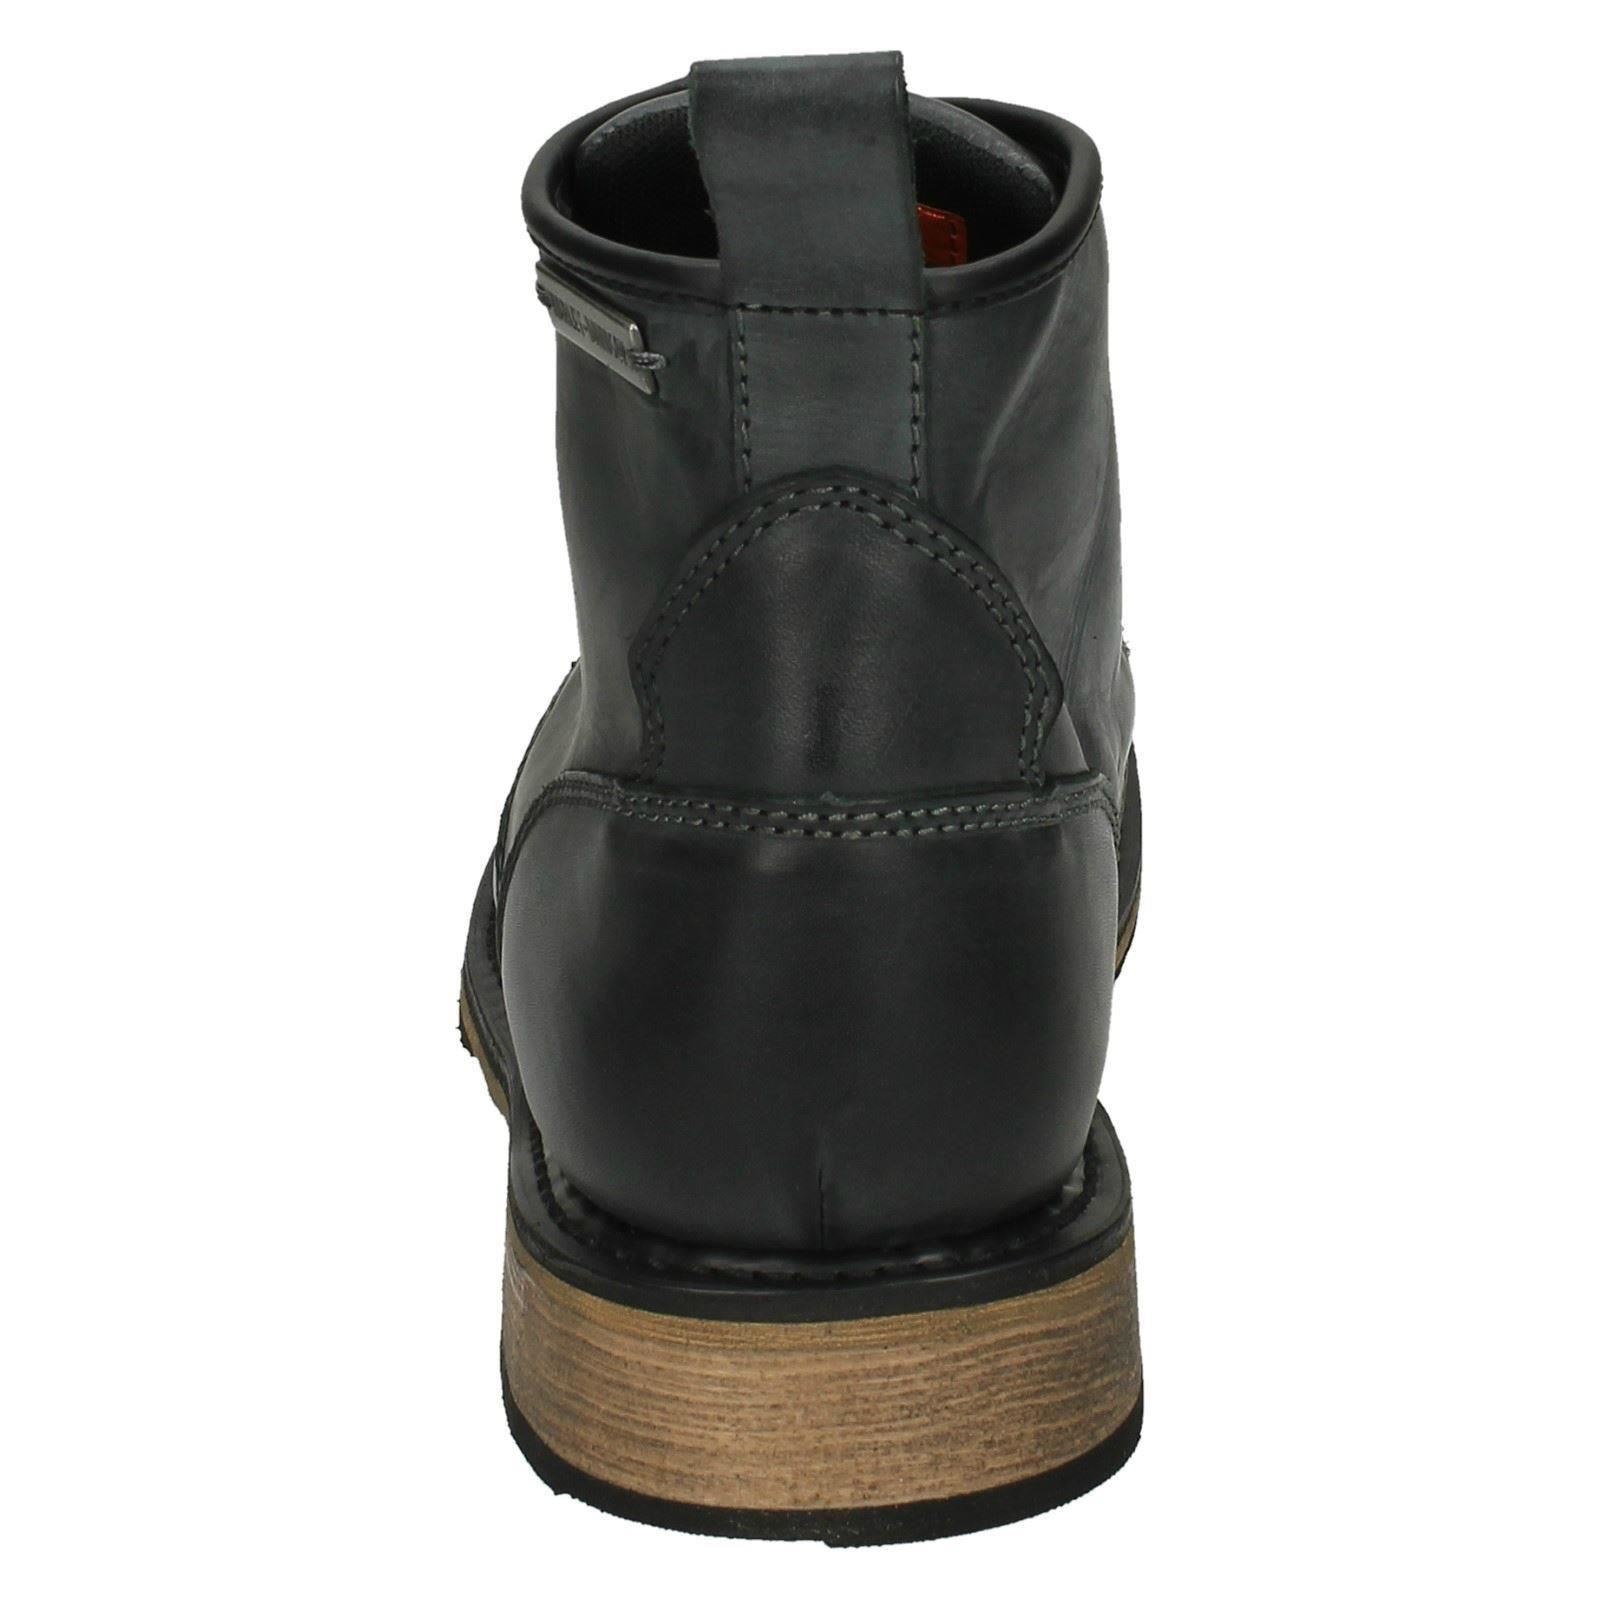 Herren Harley Davidson Ankle Stiefel The The Stiefel Style - Joshua 7f0868